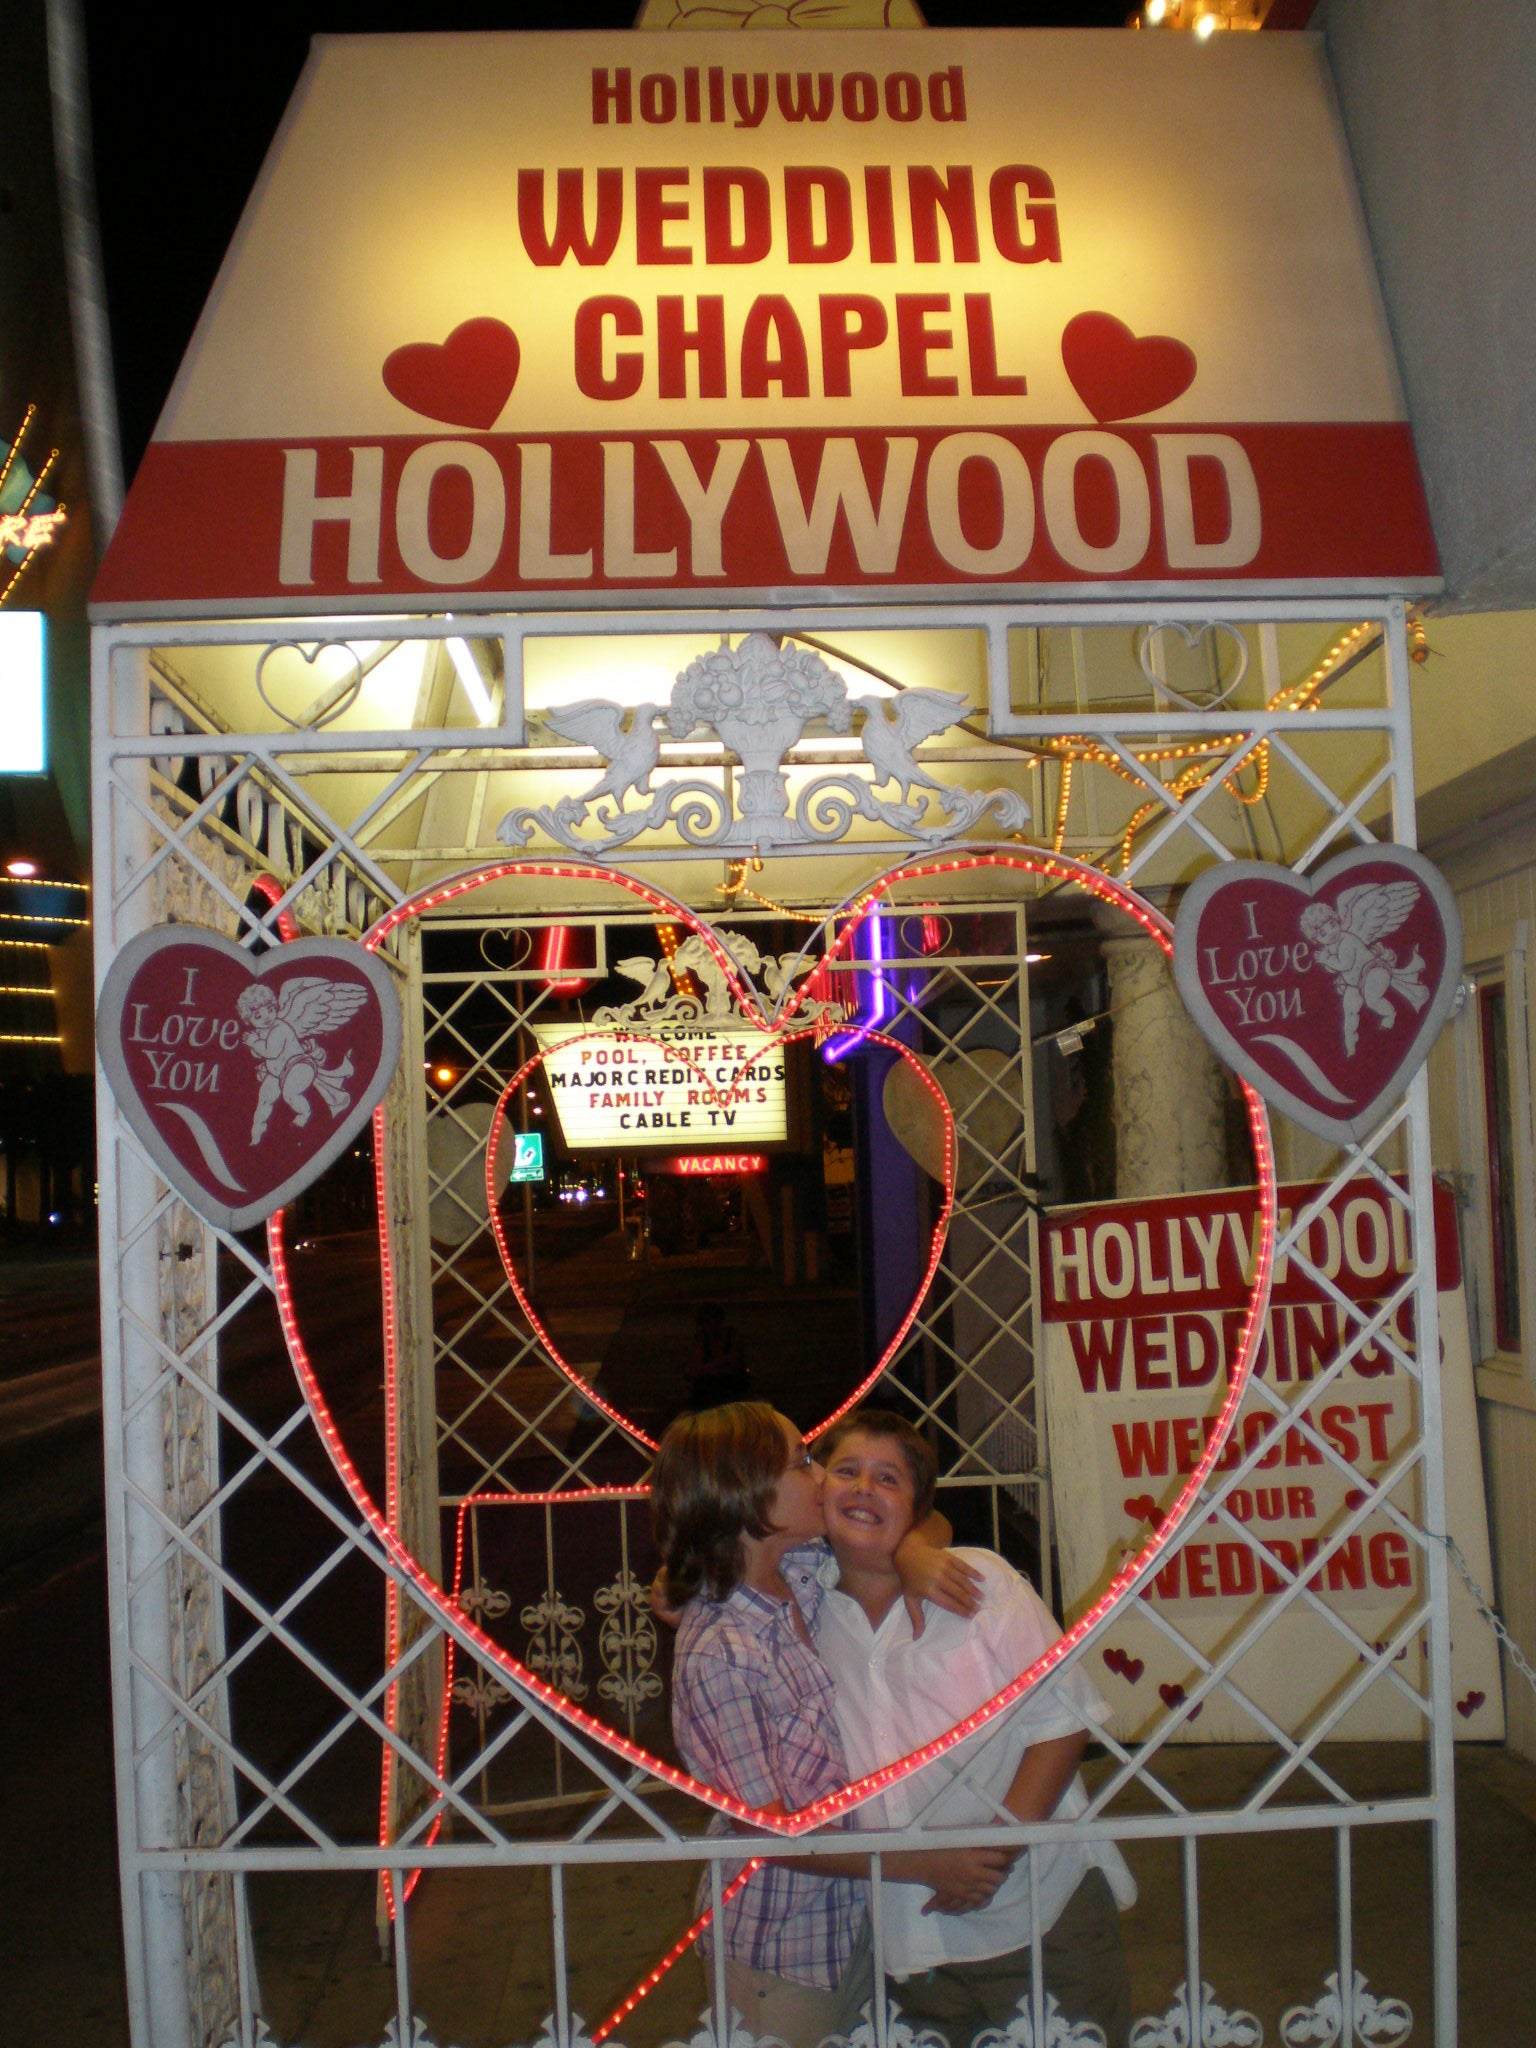 Hollywood Wedding Chapel (Cerrado)